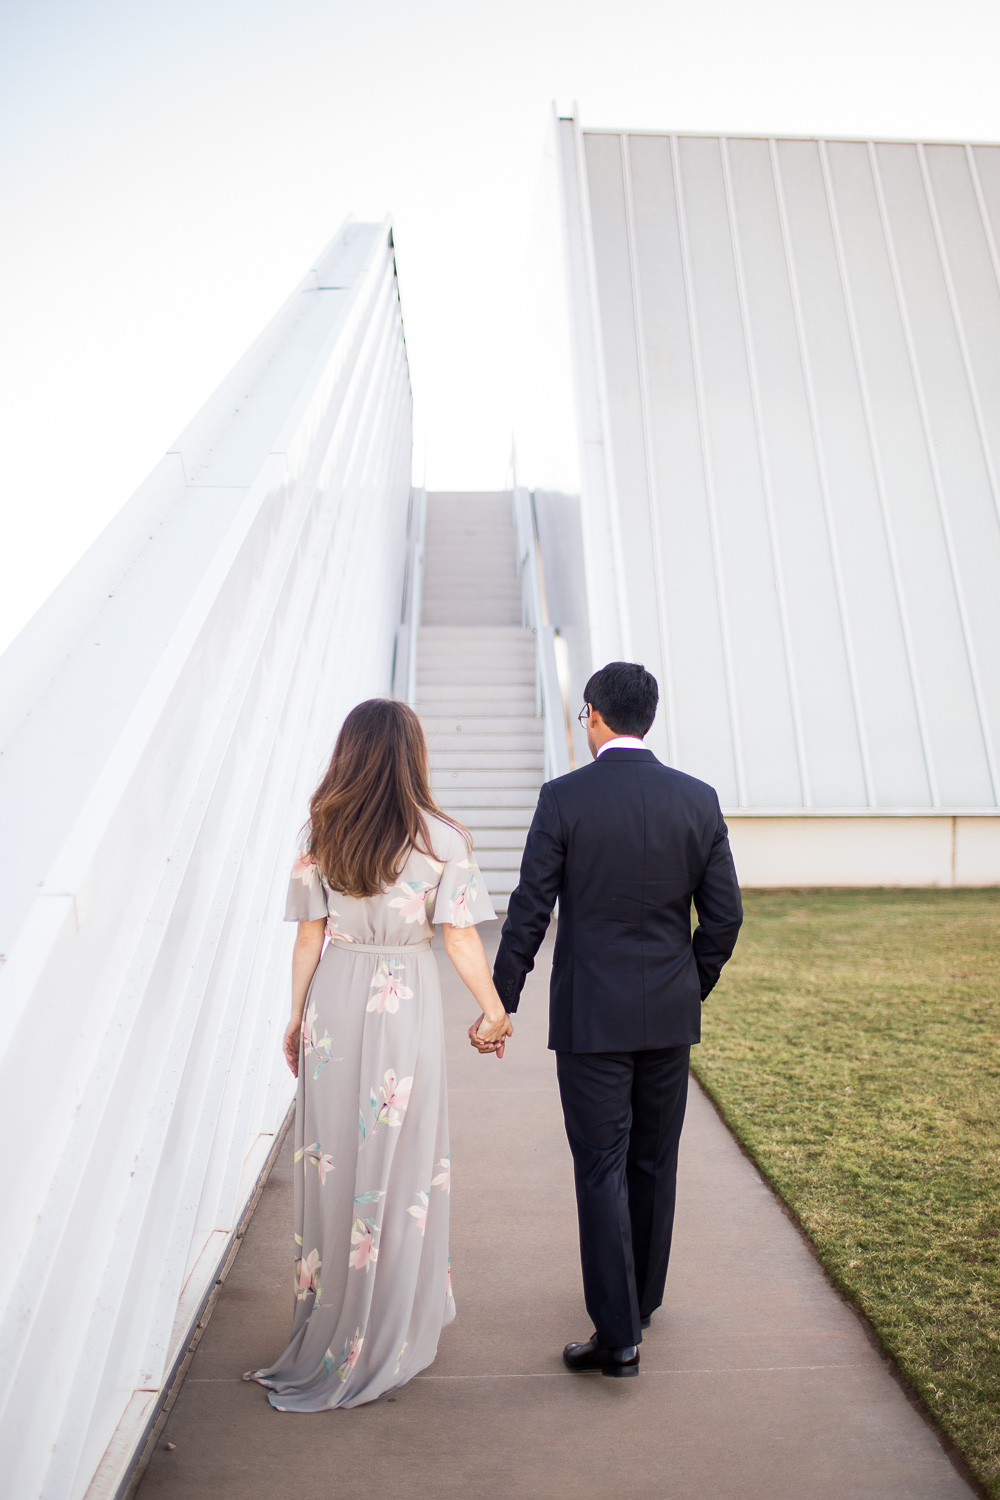 OKC-Boathouse-Engagement-Photos-26.jpg